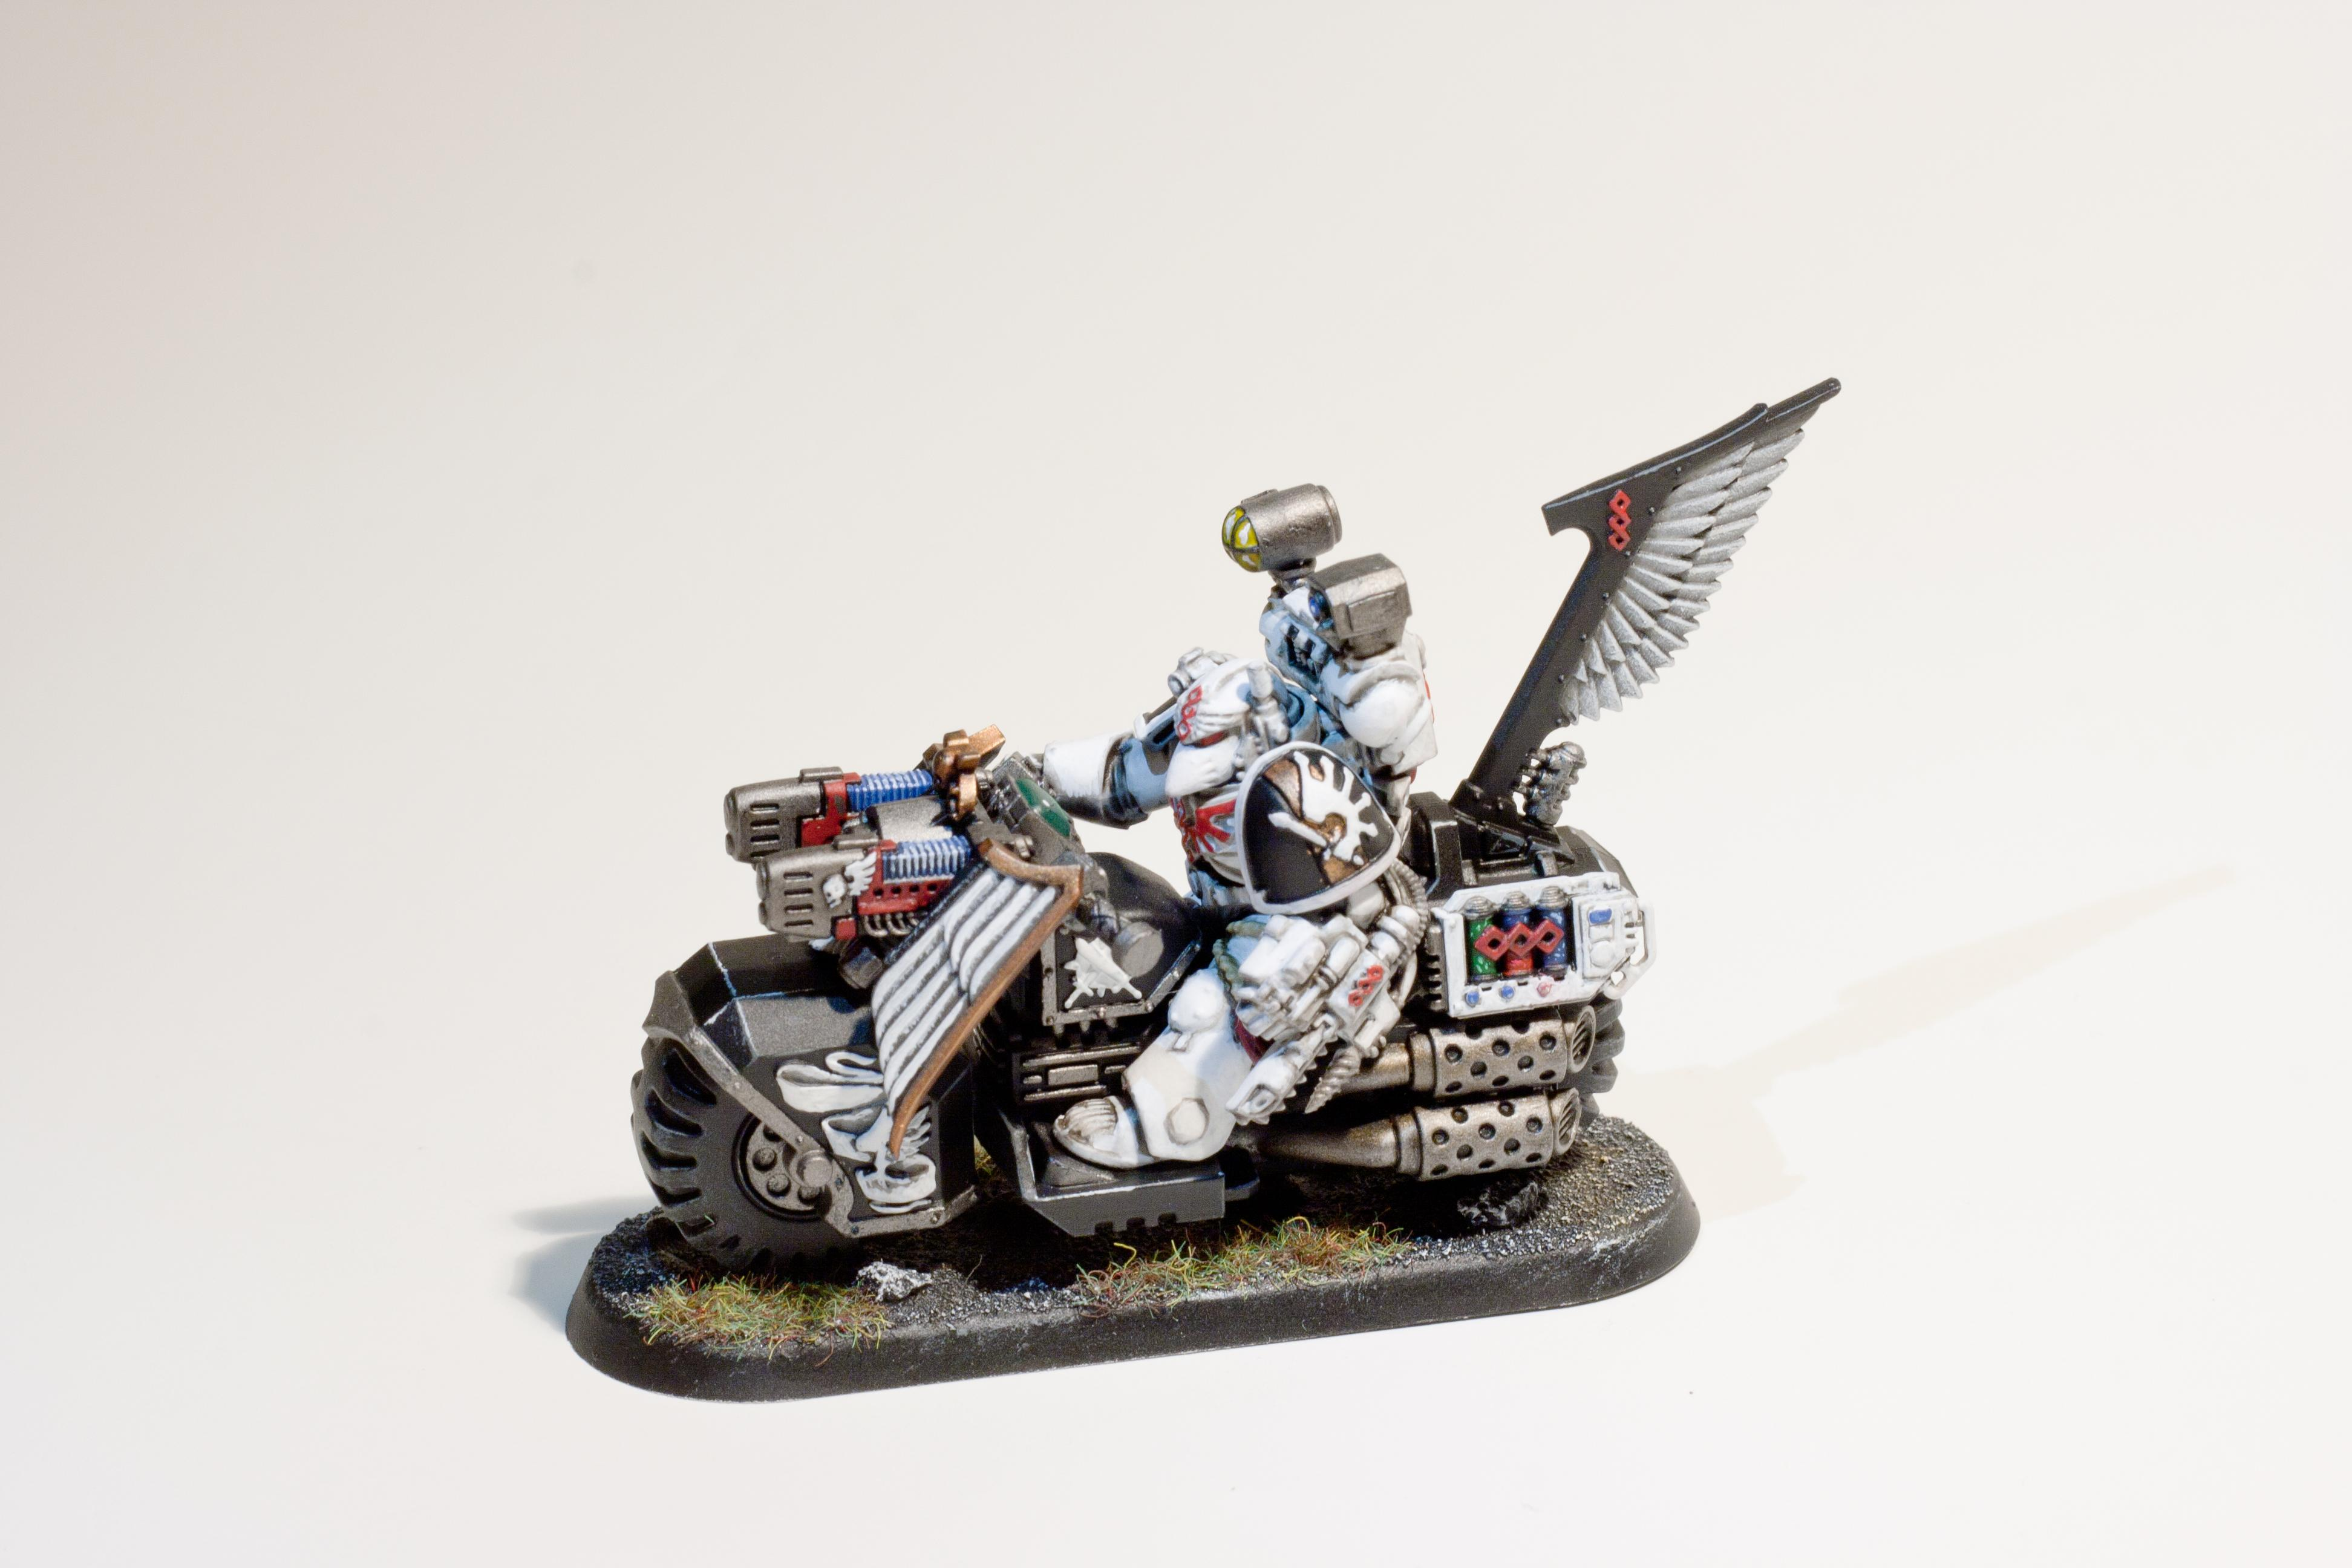 Apothecary, Command Squad, Dark Angels, Ravenwing, Space Marines, Warhammer 40,000